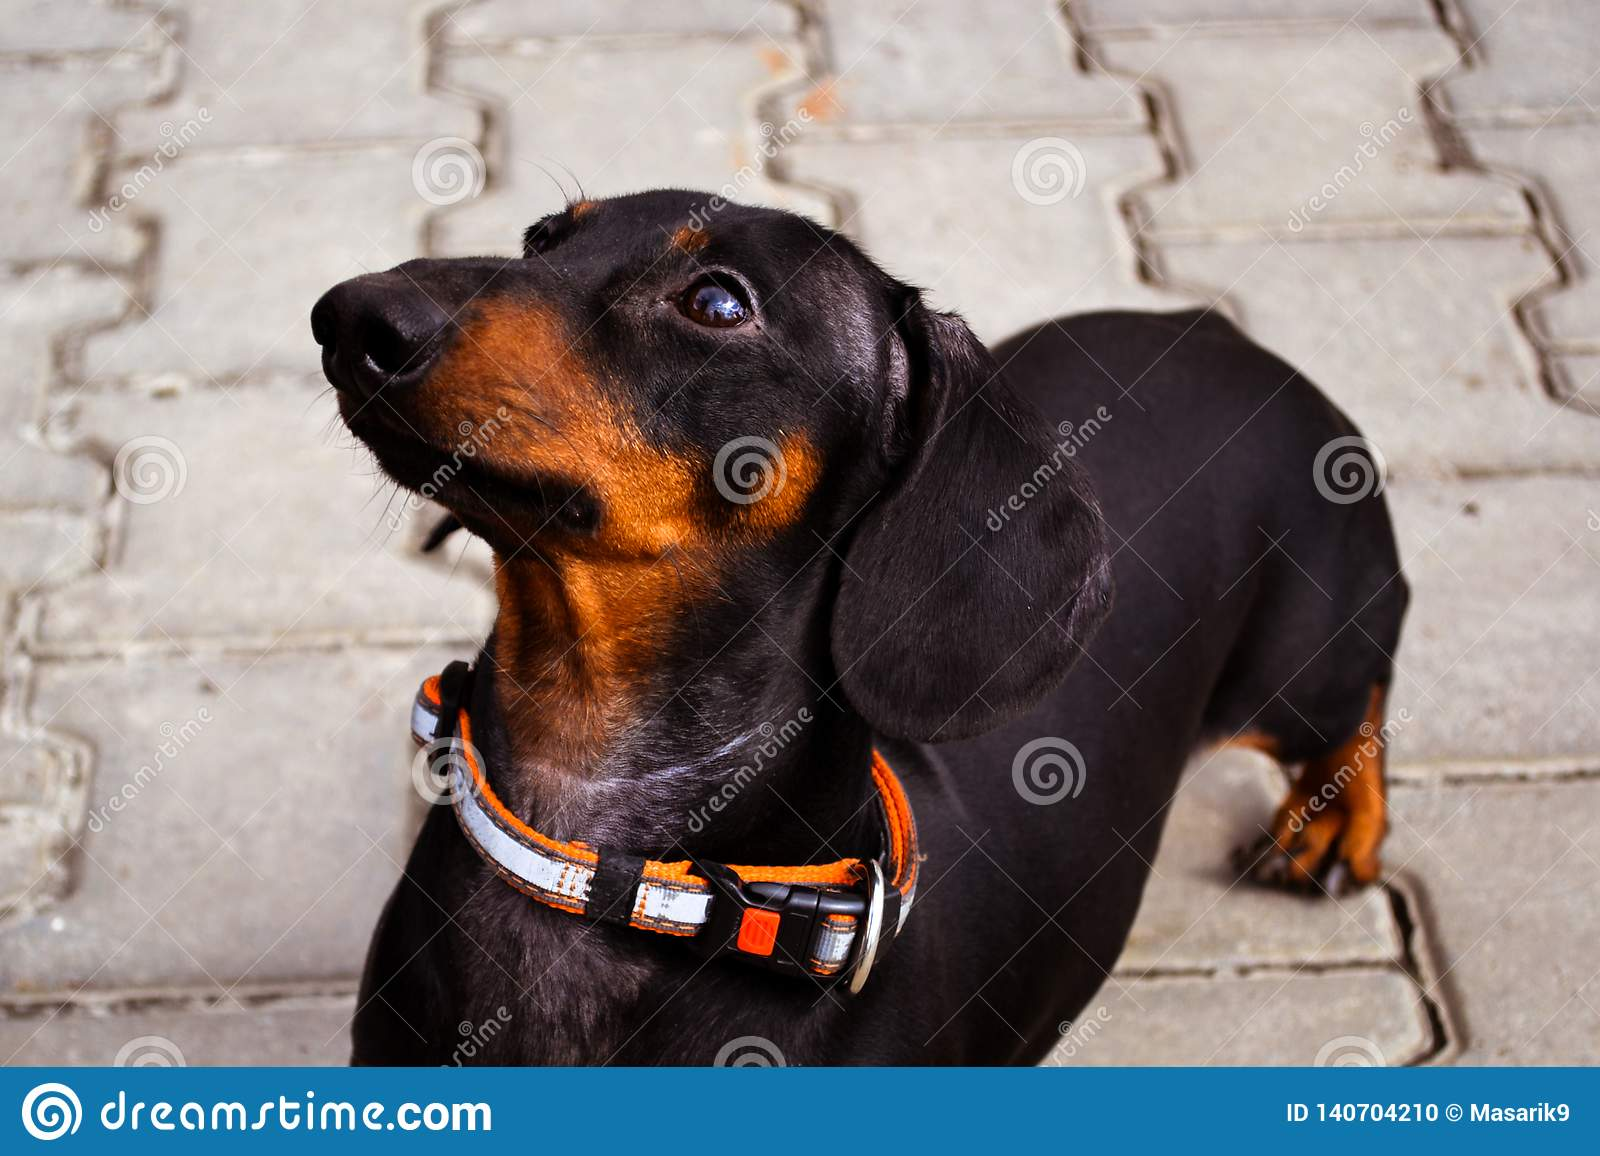 Portrait of a dog puppy of the breed dachshund black and tan on a stone tile background